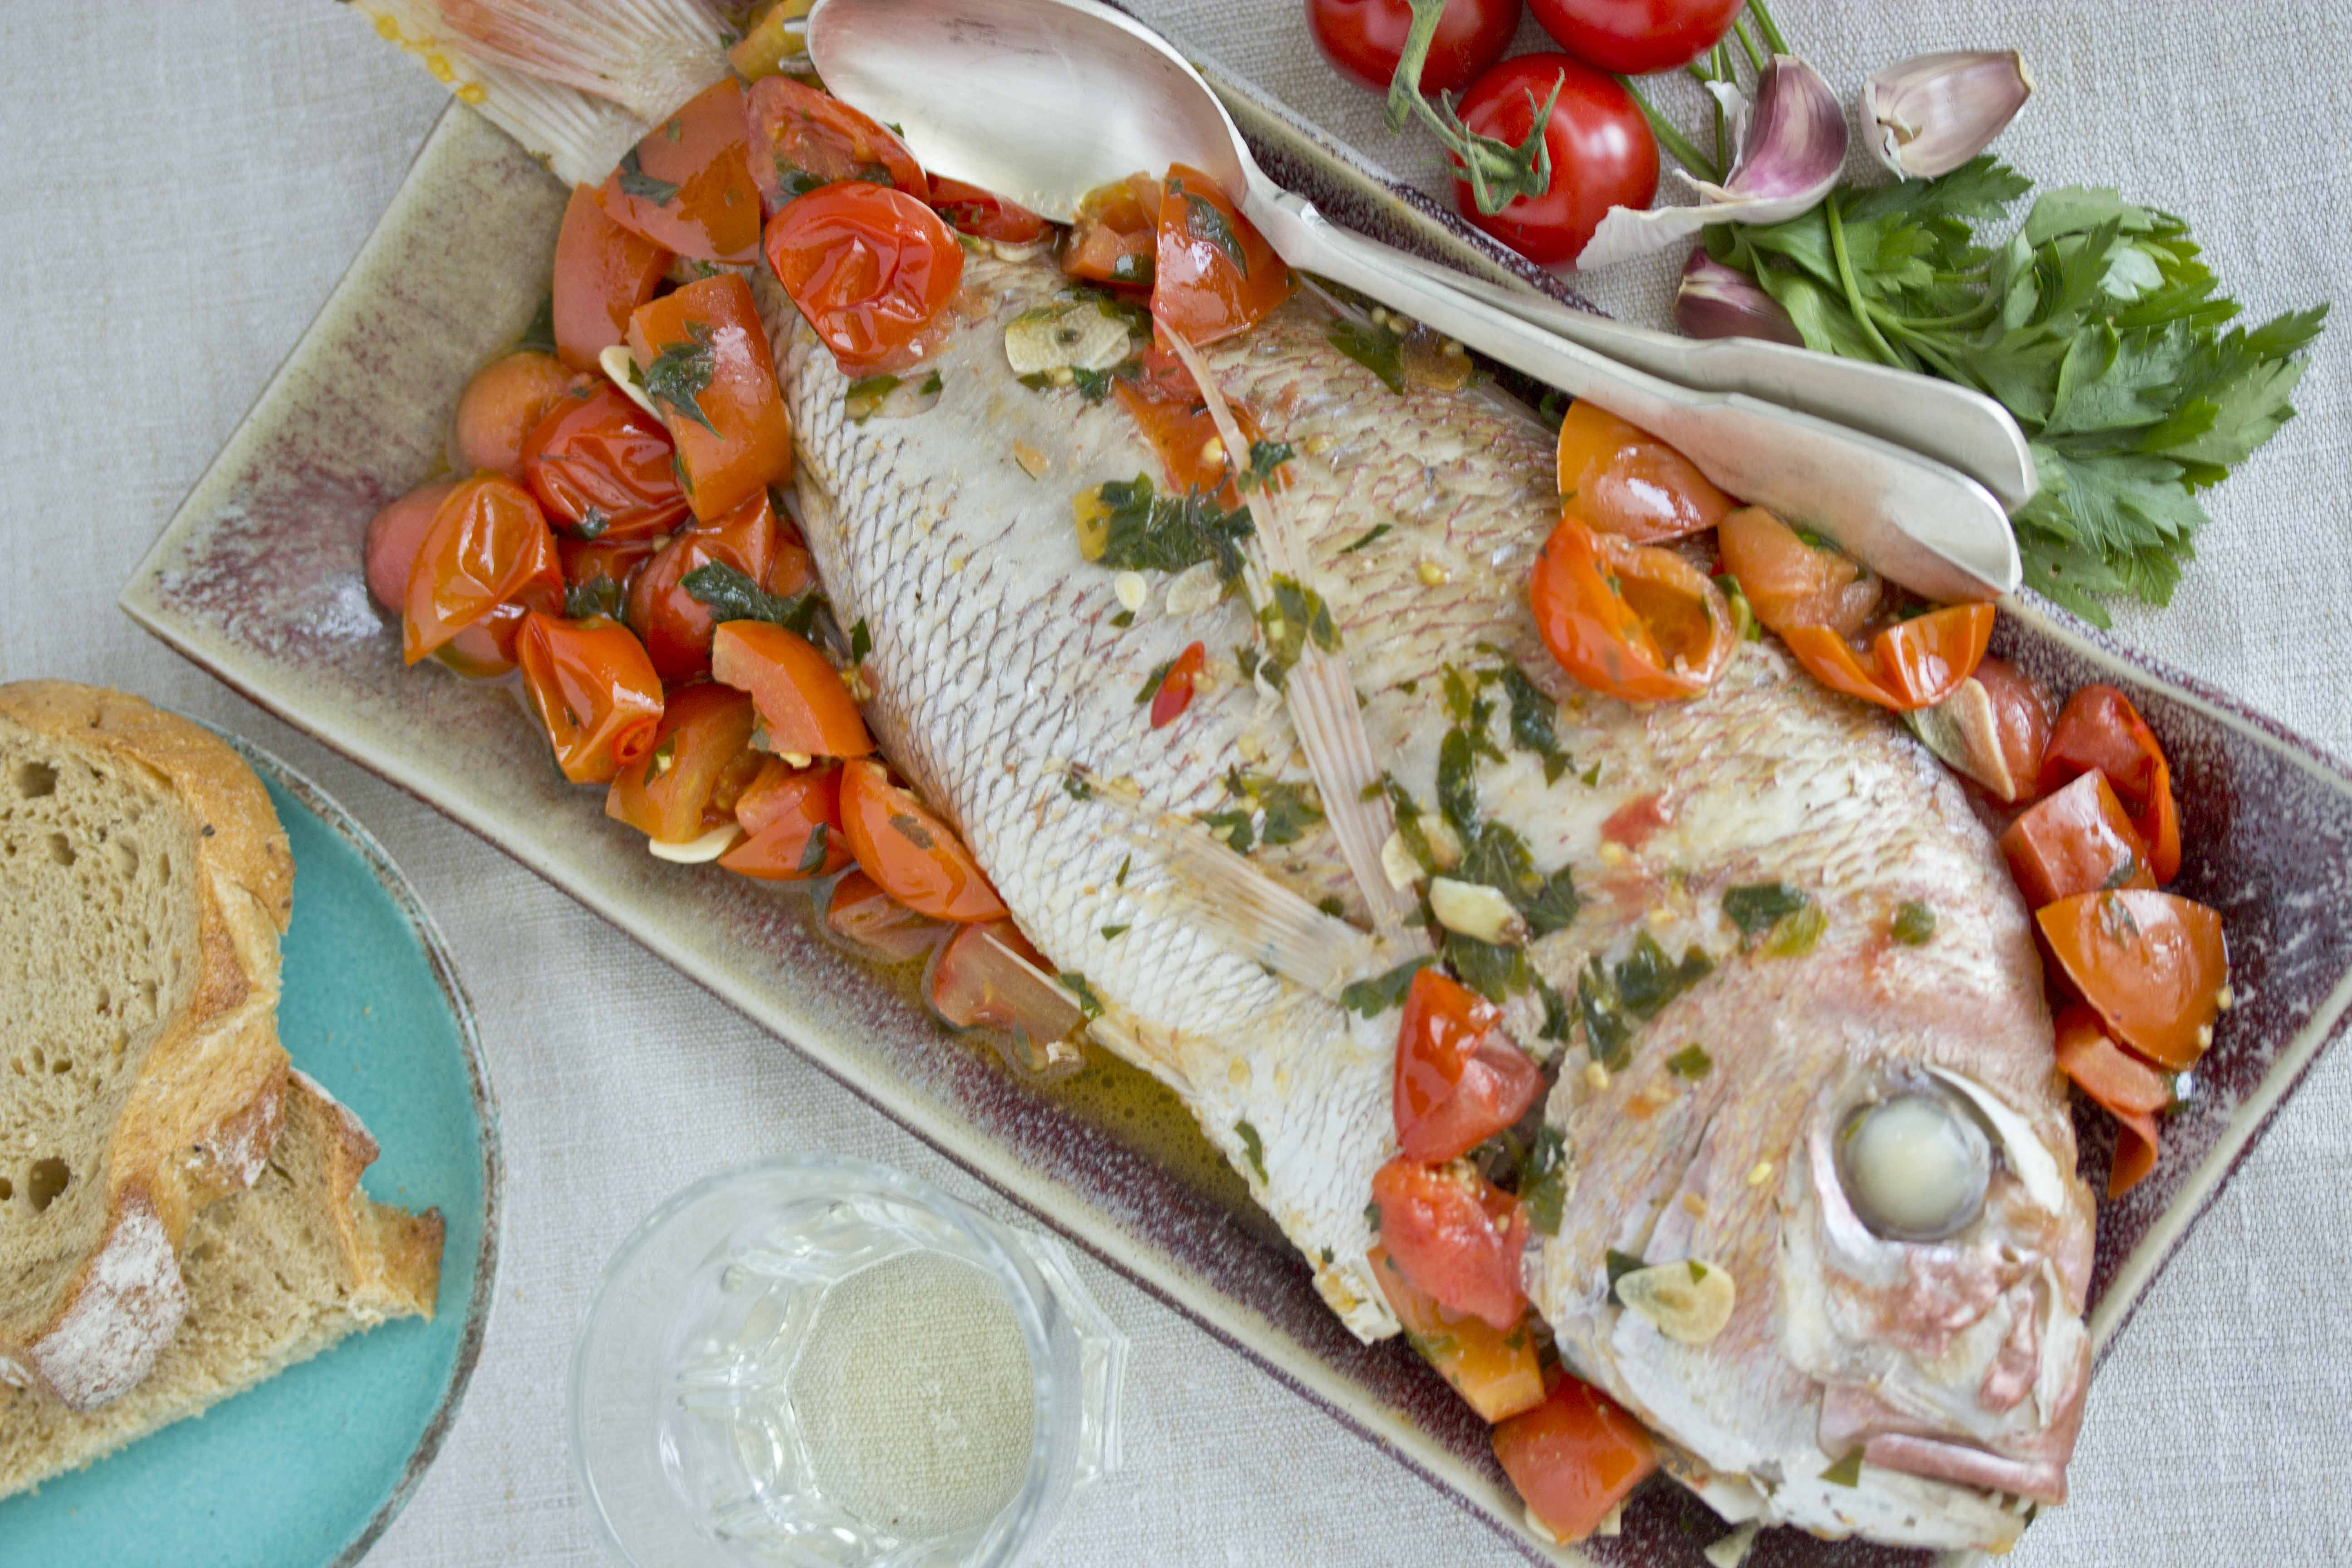 Acquapazza Is A Method Of Stewing Fish In Garlic Oil